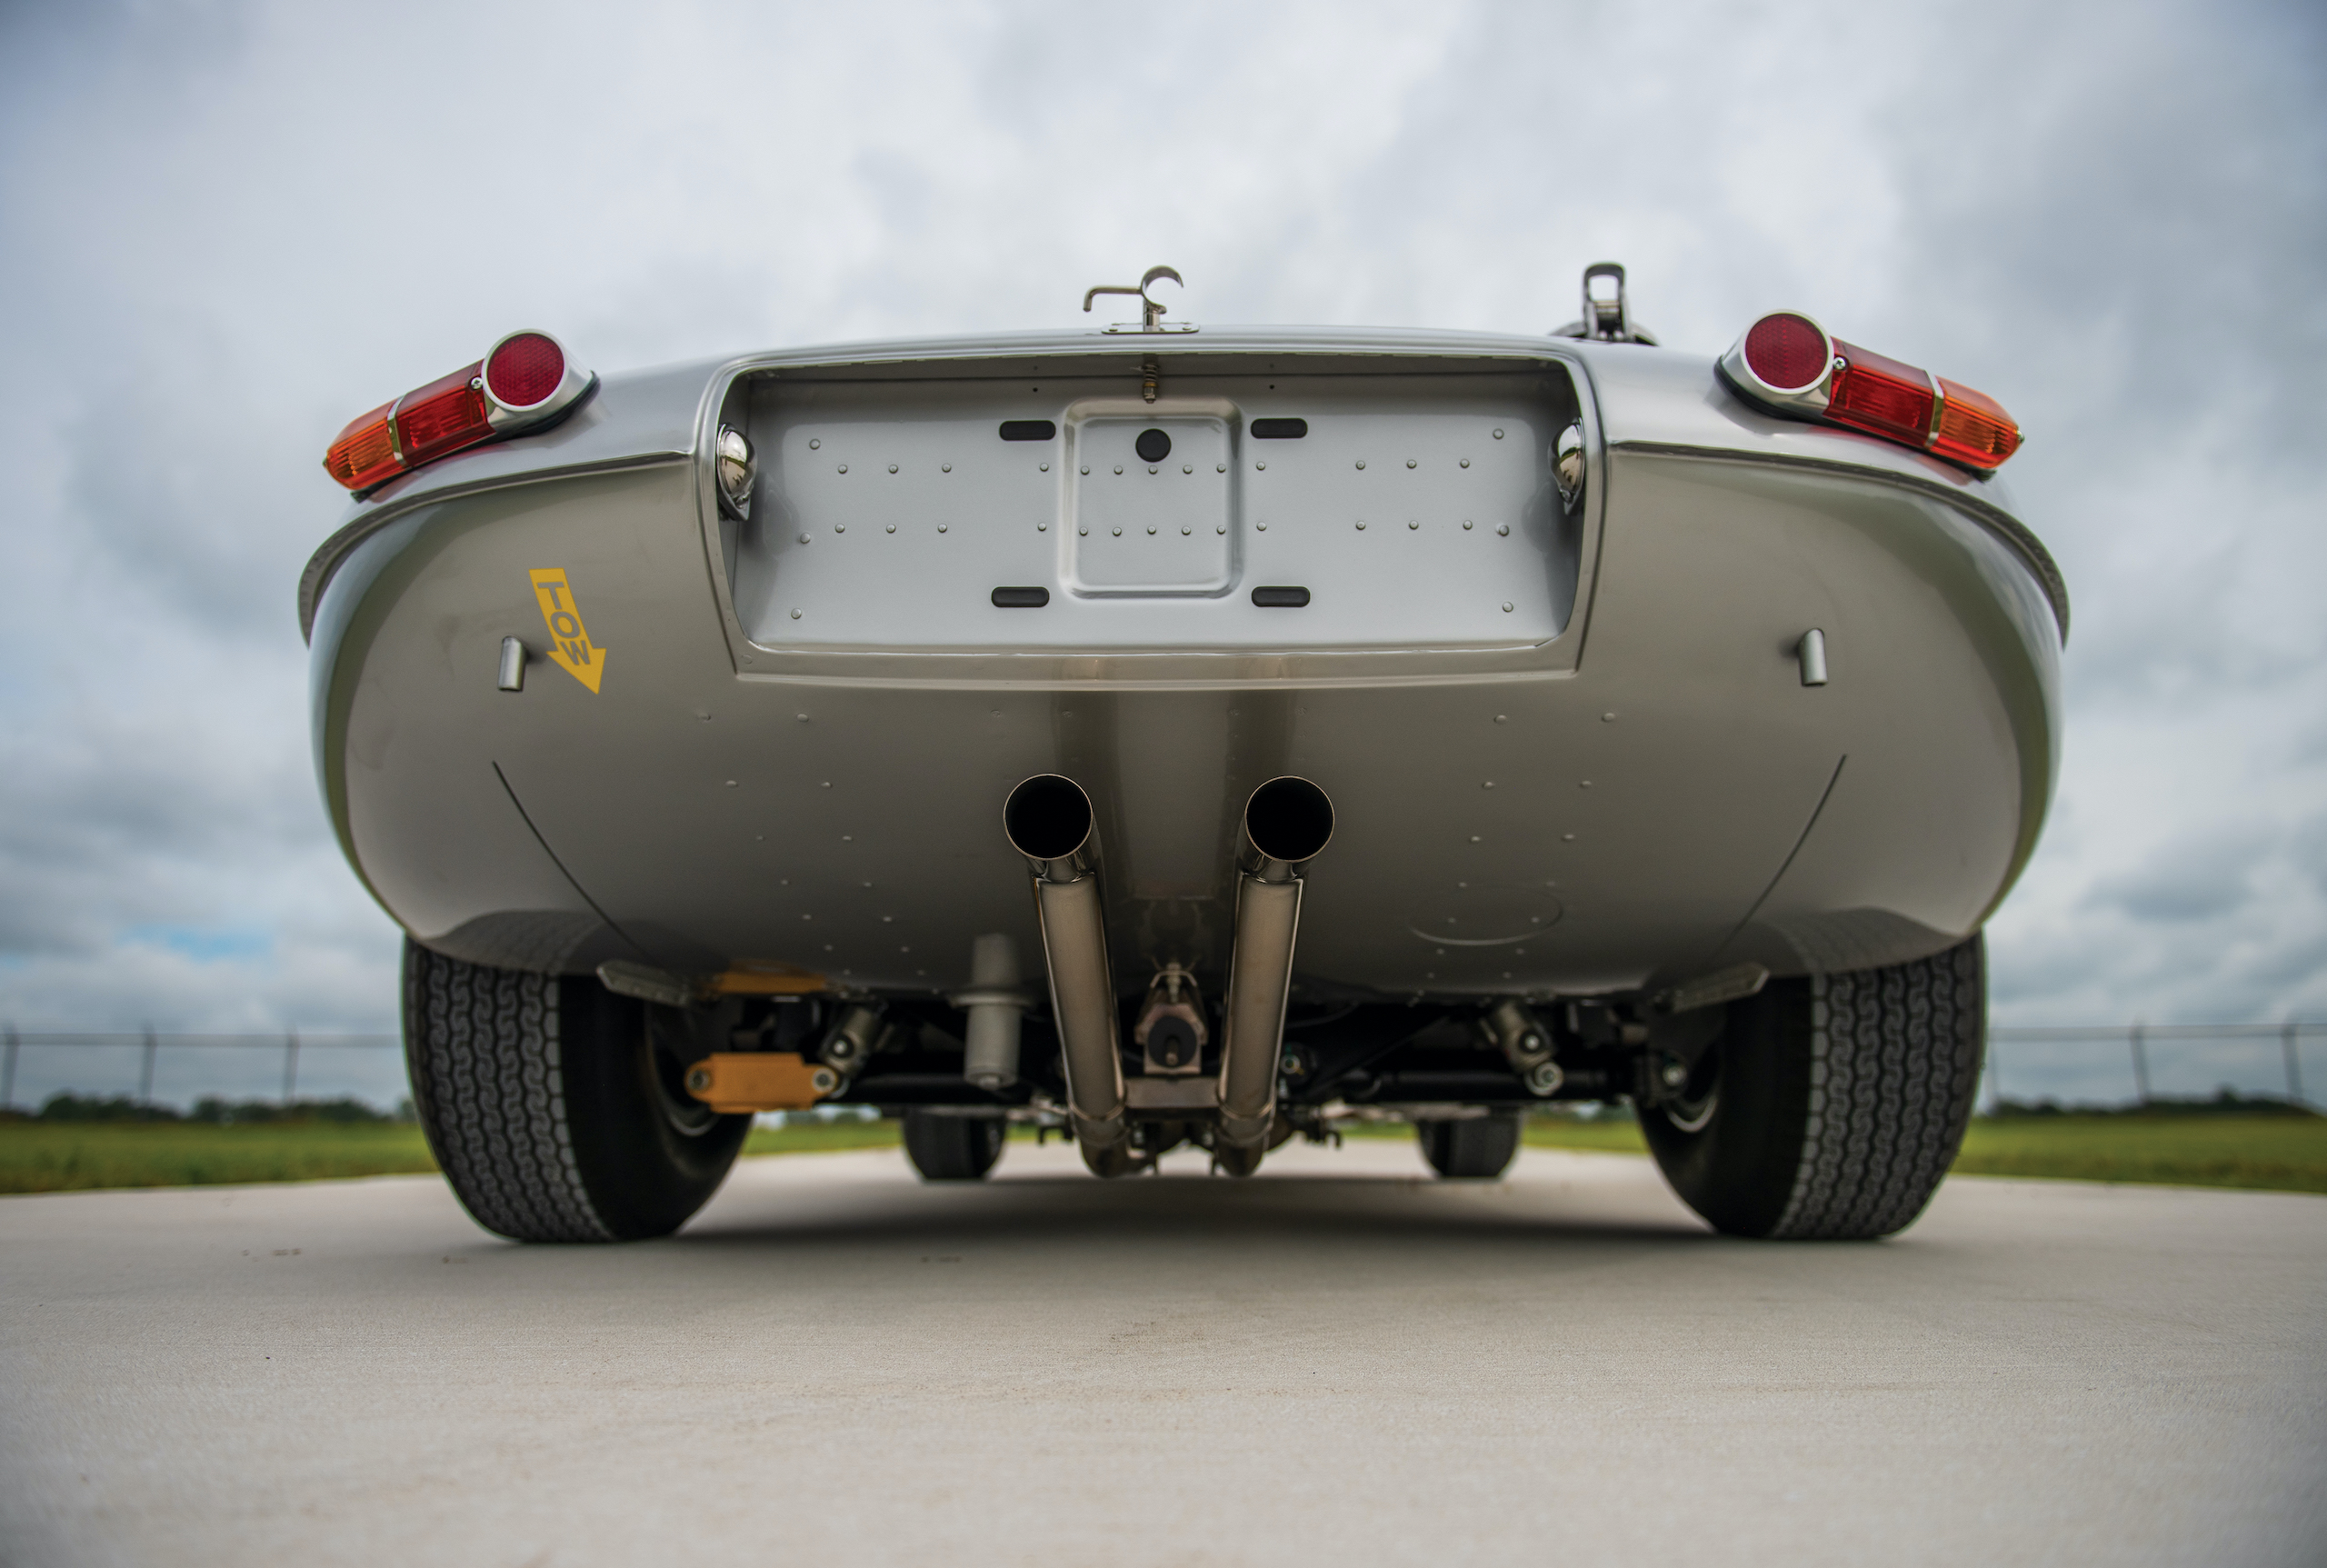 1963 Jag E Type rear underside pipes